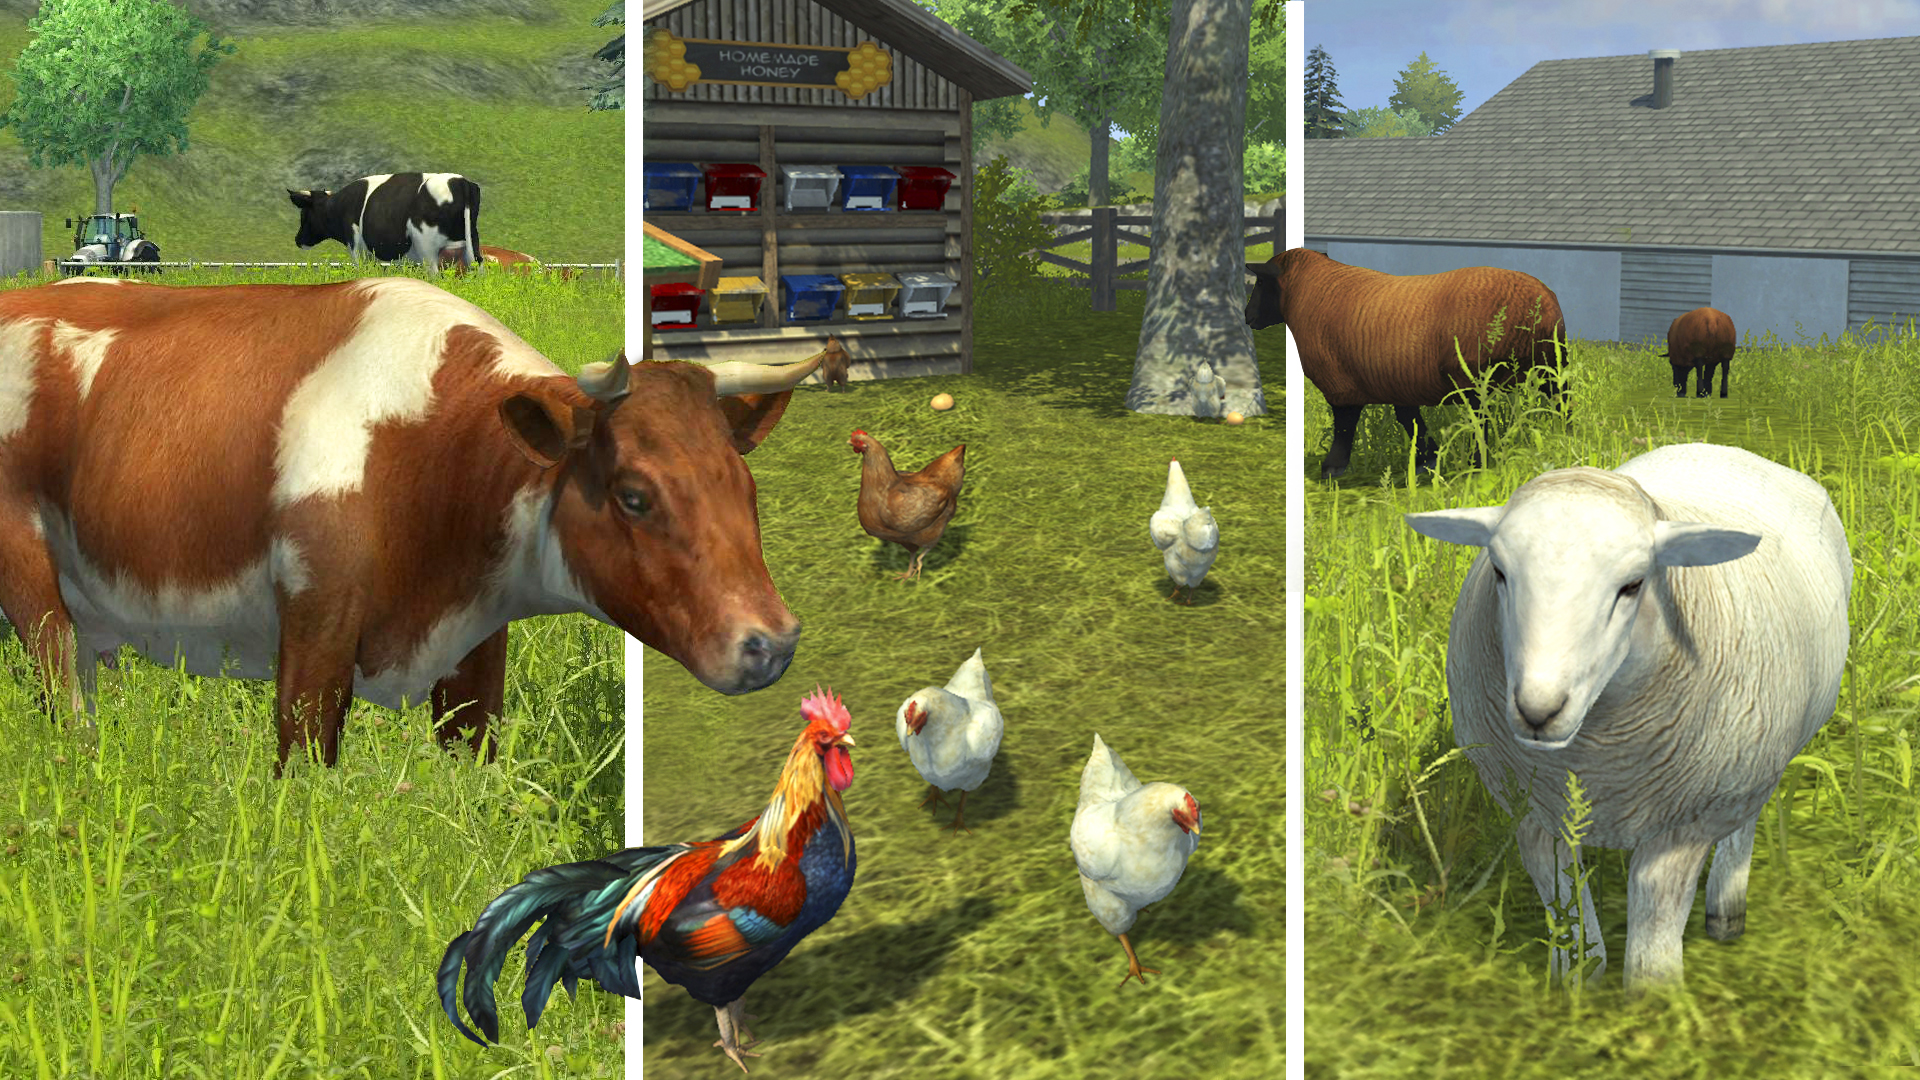 Tumblr Pnl Vuf Vf Ro besides Weekend Warrior C er Converted V For Fs X likewise Story Of Seasons Mc X Lillie Family By Geoffheaven D Kc A as well N   Nc Ht Scontent Lax Cdninstagram further . on farmingsimulator game